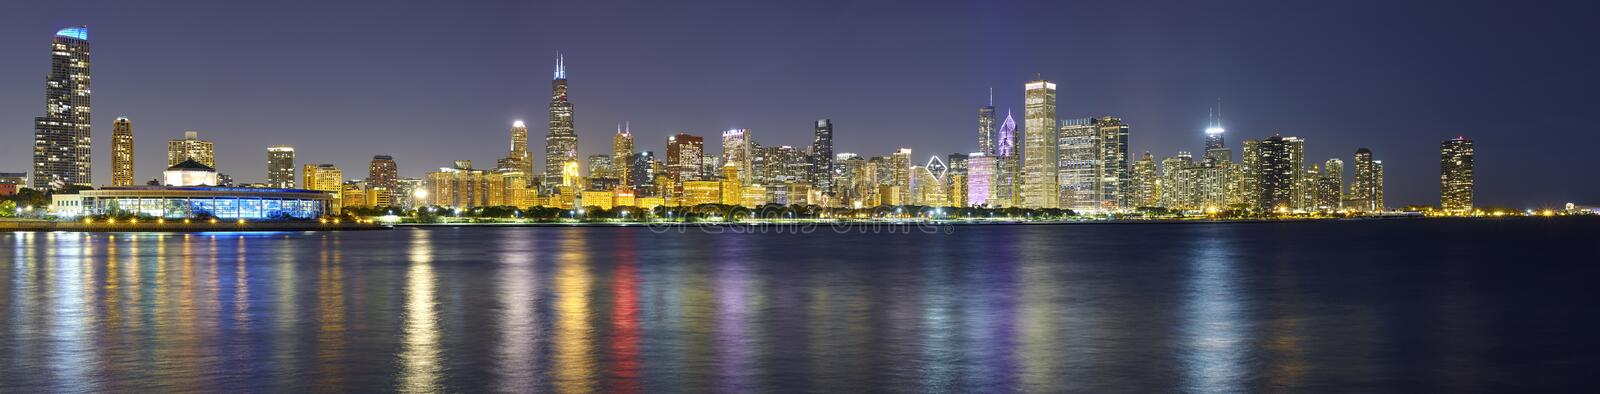 Night panoramic picture of Chicago city skyline with reflection stock image